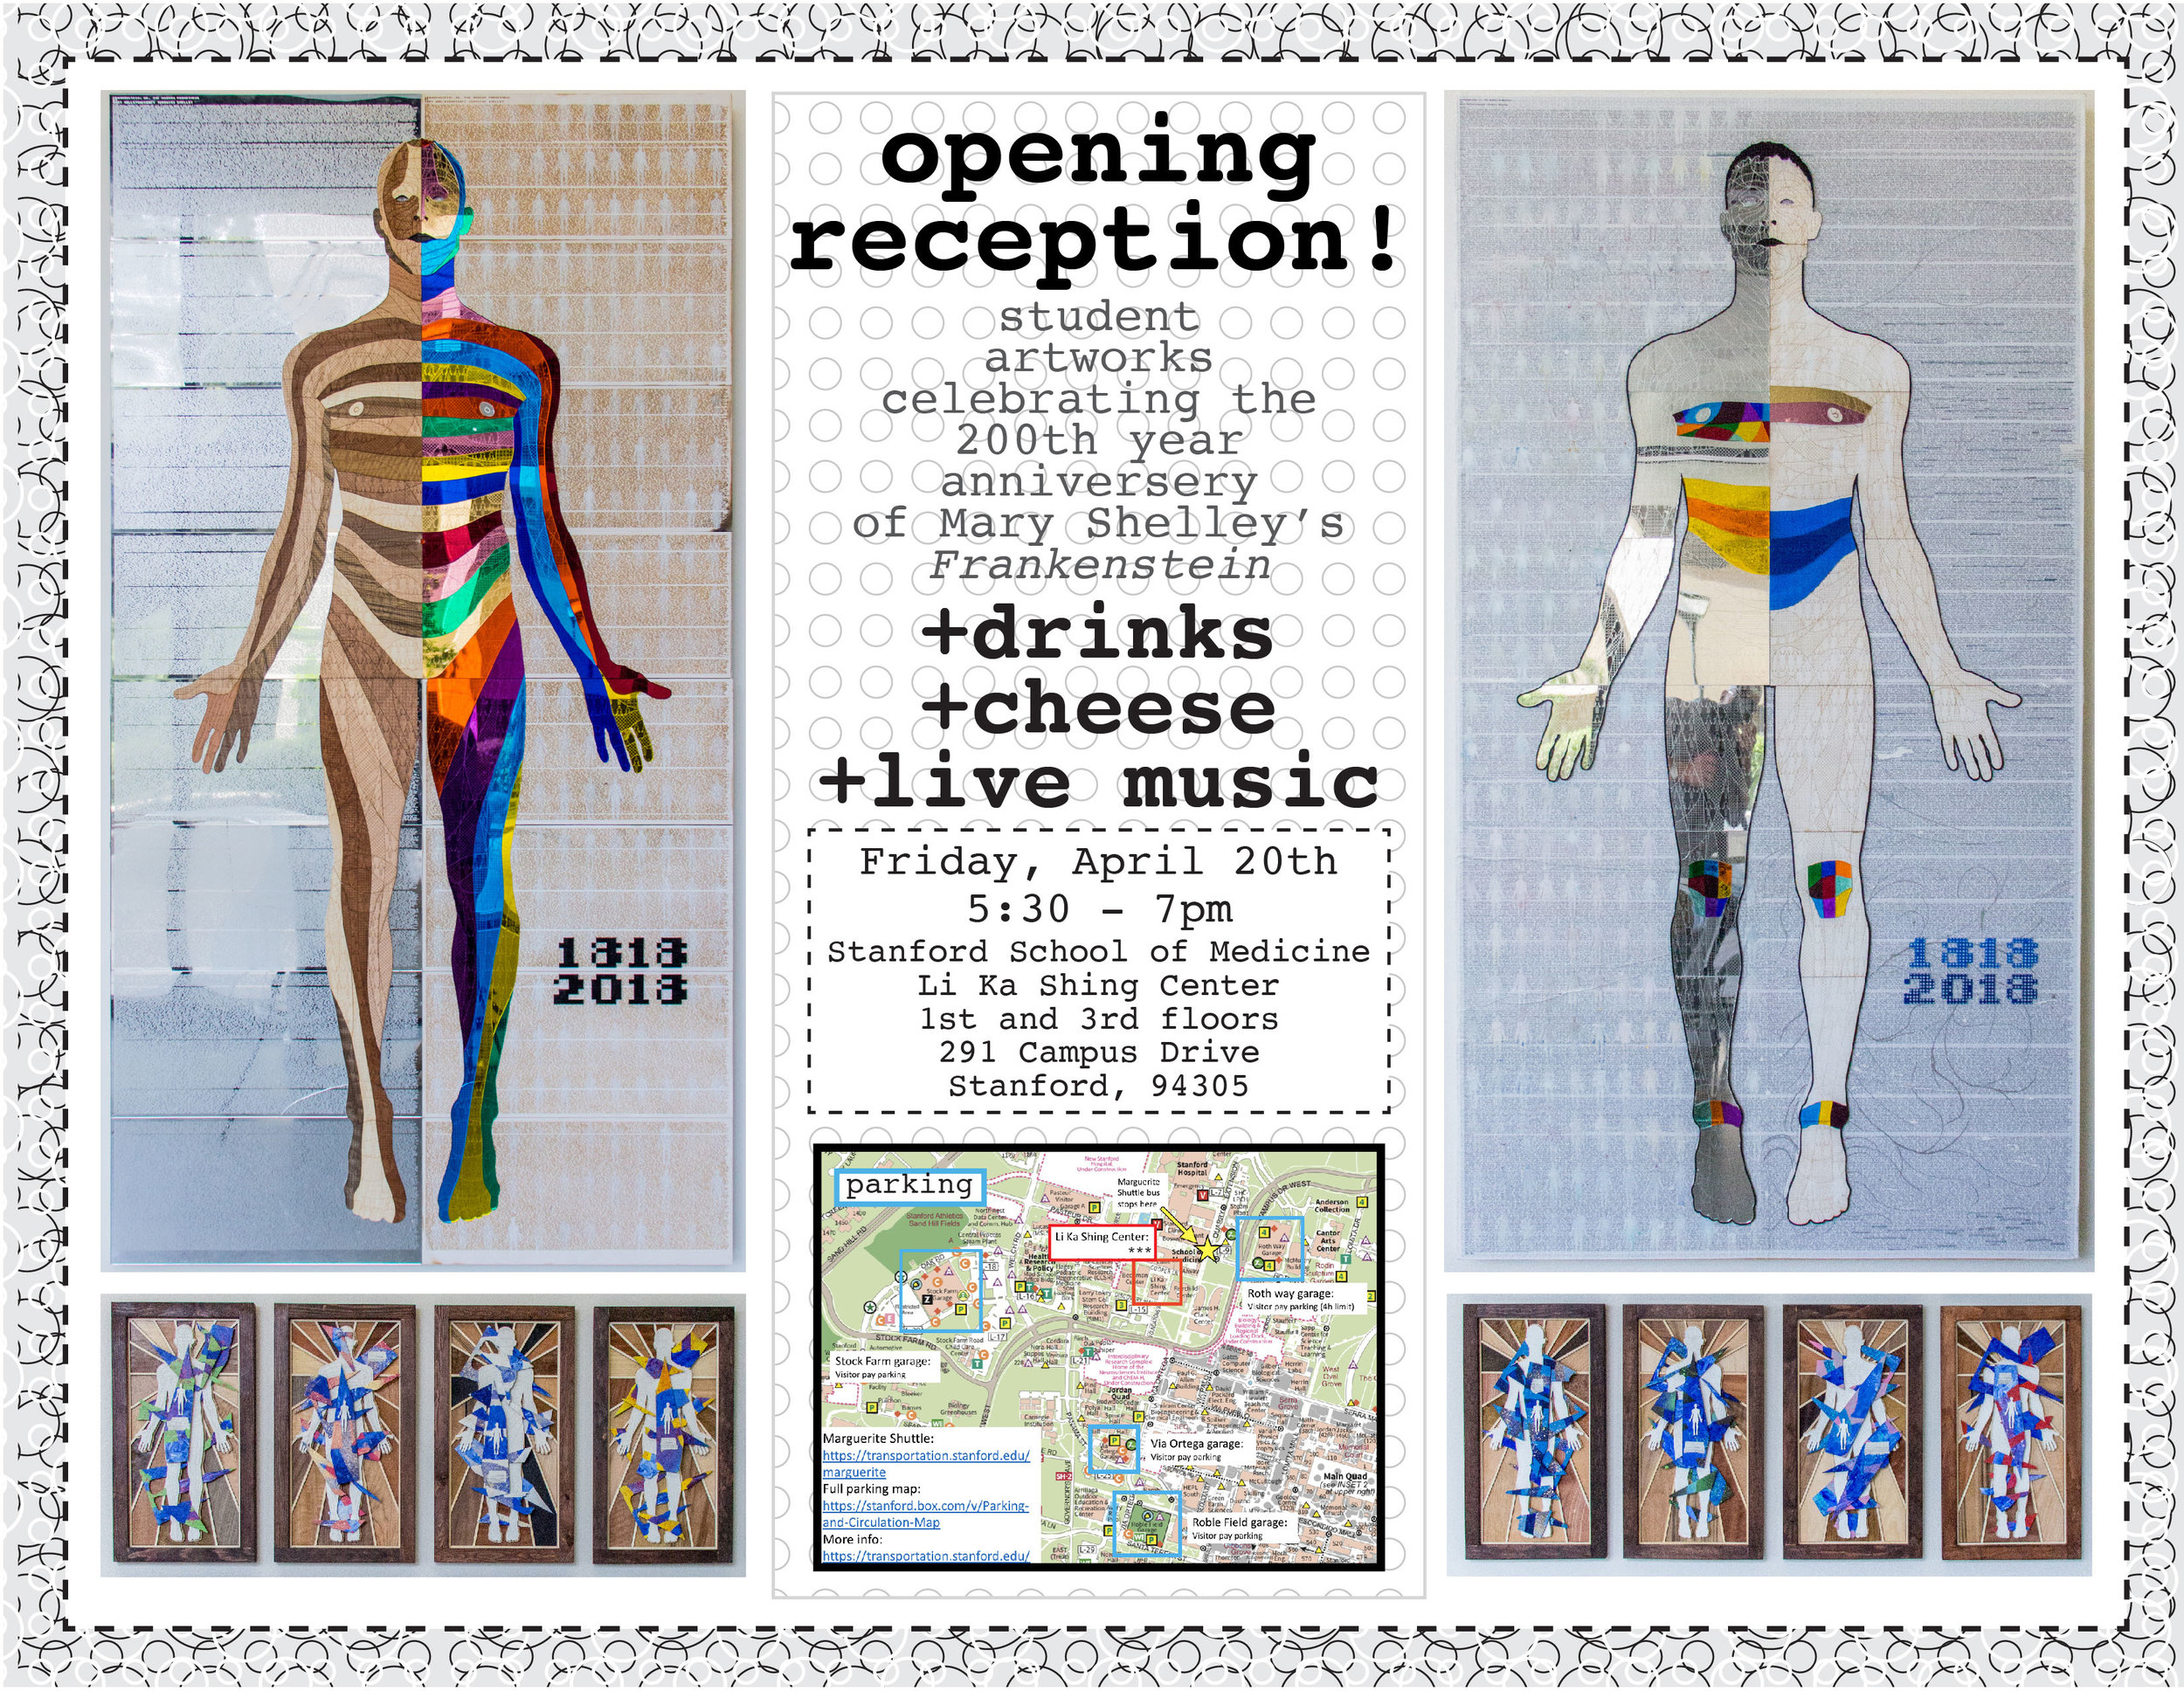 art reception details.jpg